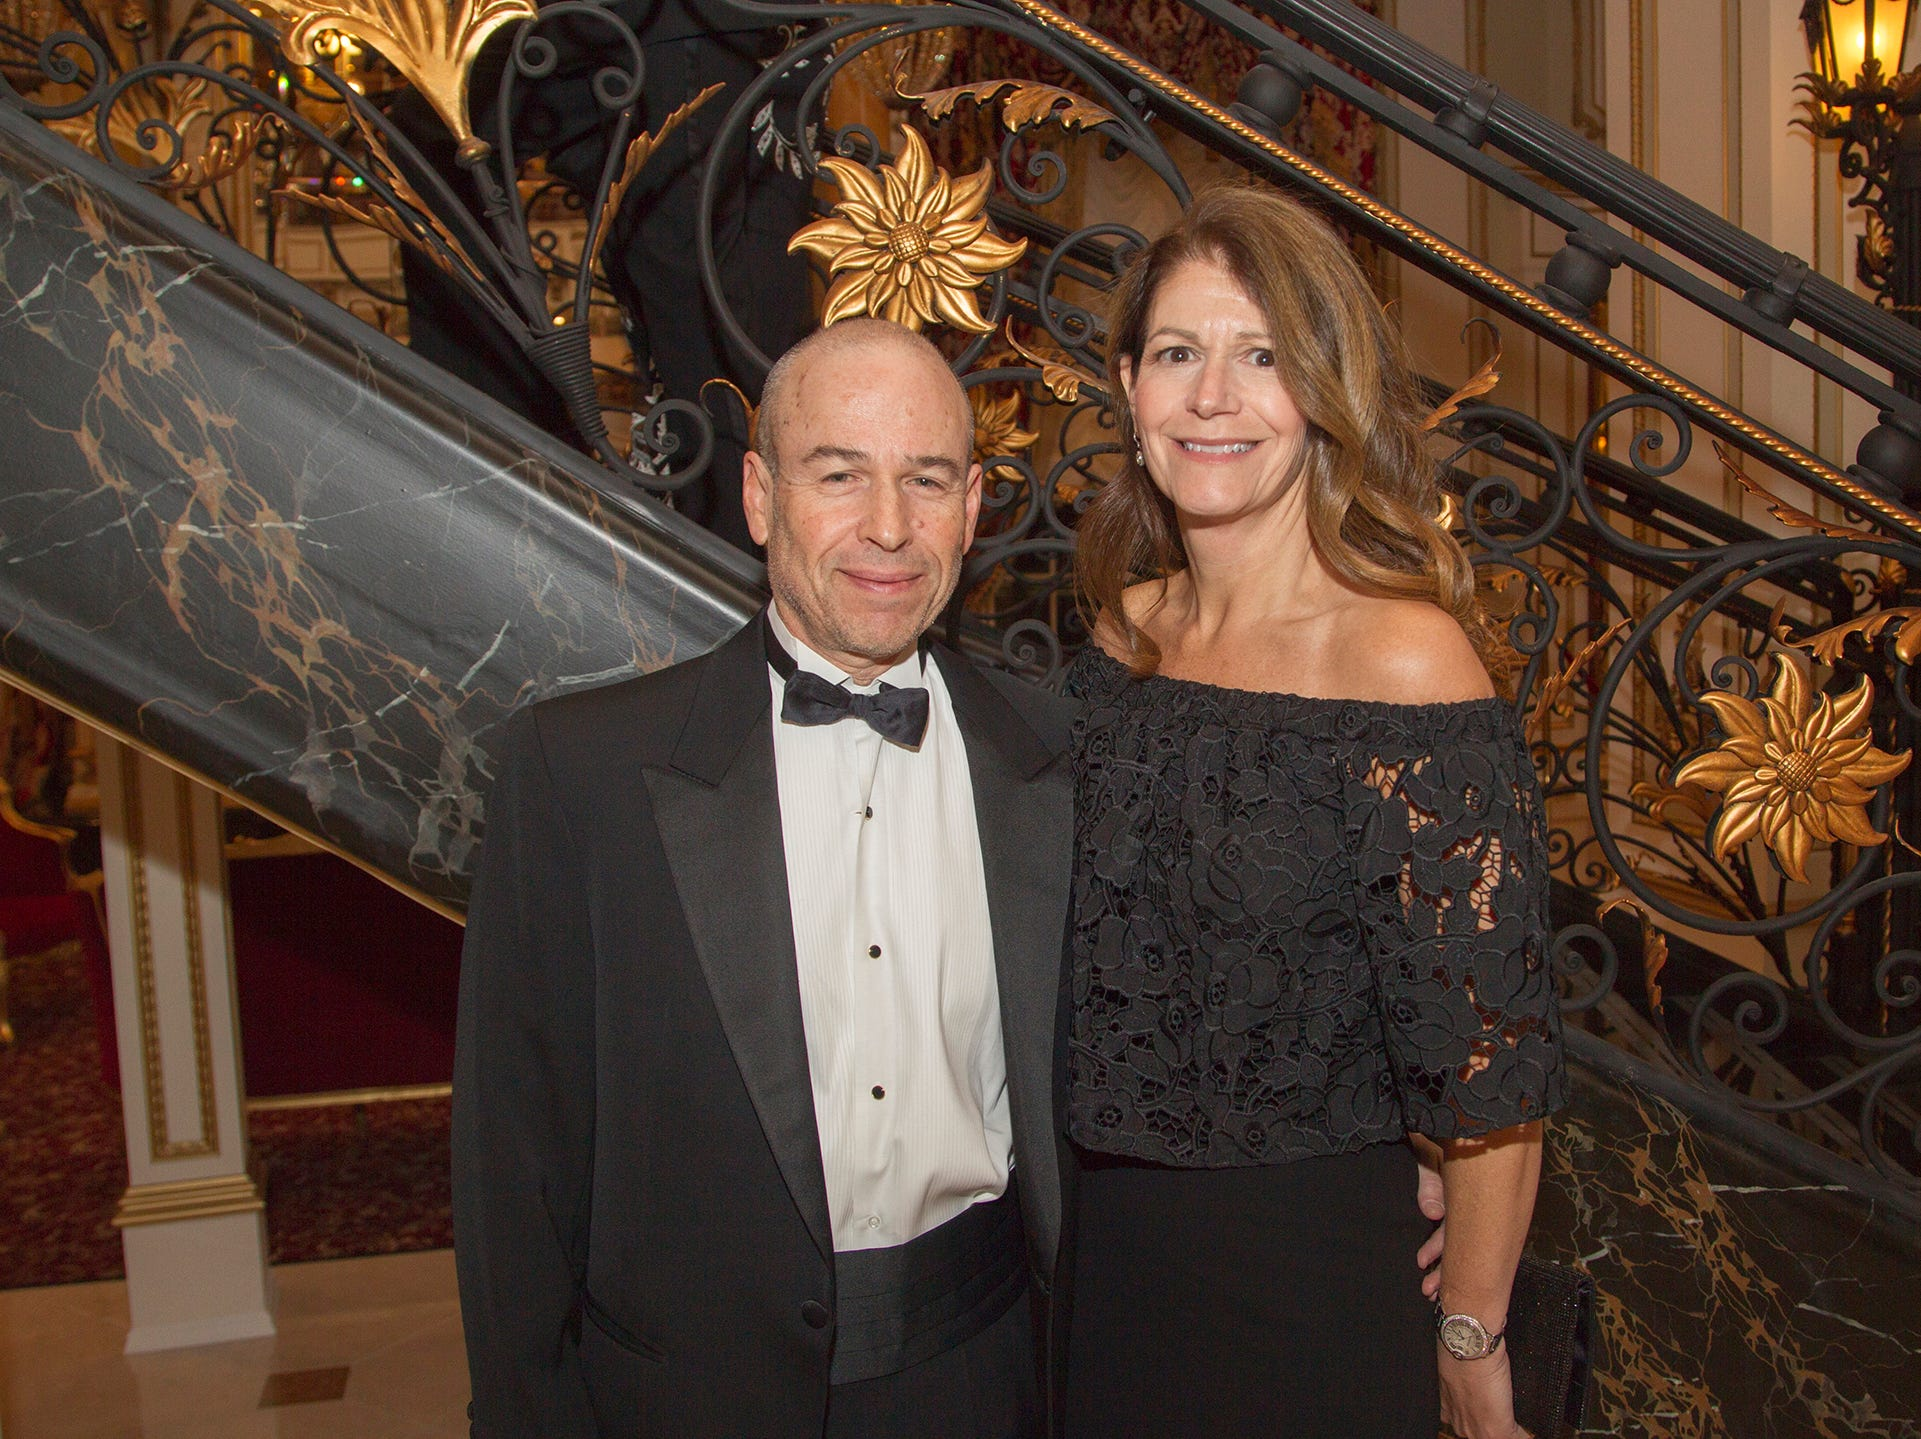 Ed and Deany Rubin. The 72nd Annual Valley Ball gala at The Legacy Castle in Pompton Plains. 11/16/2018